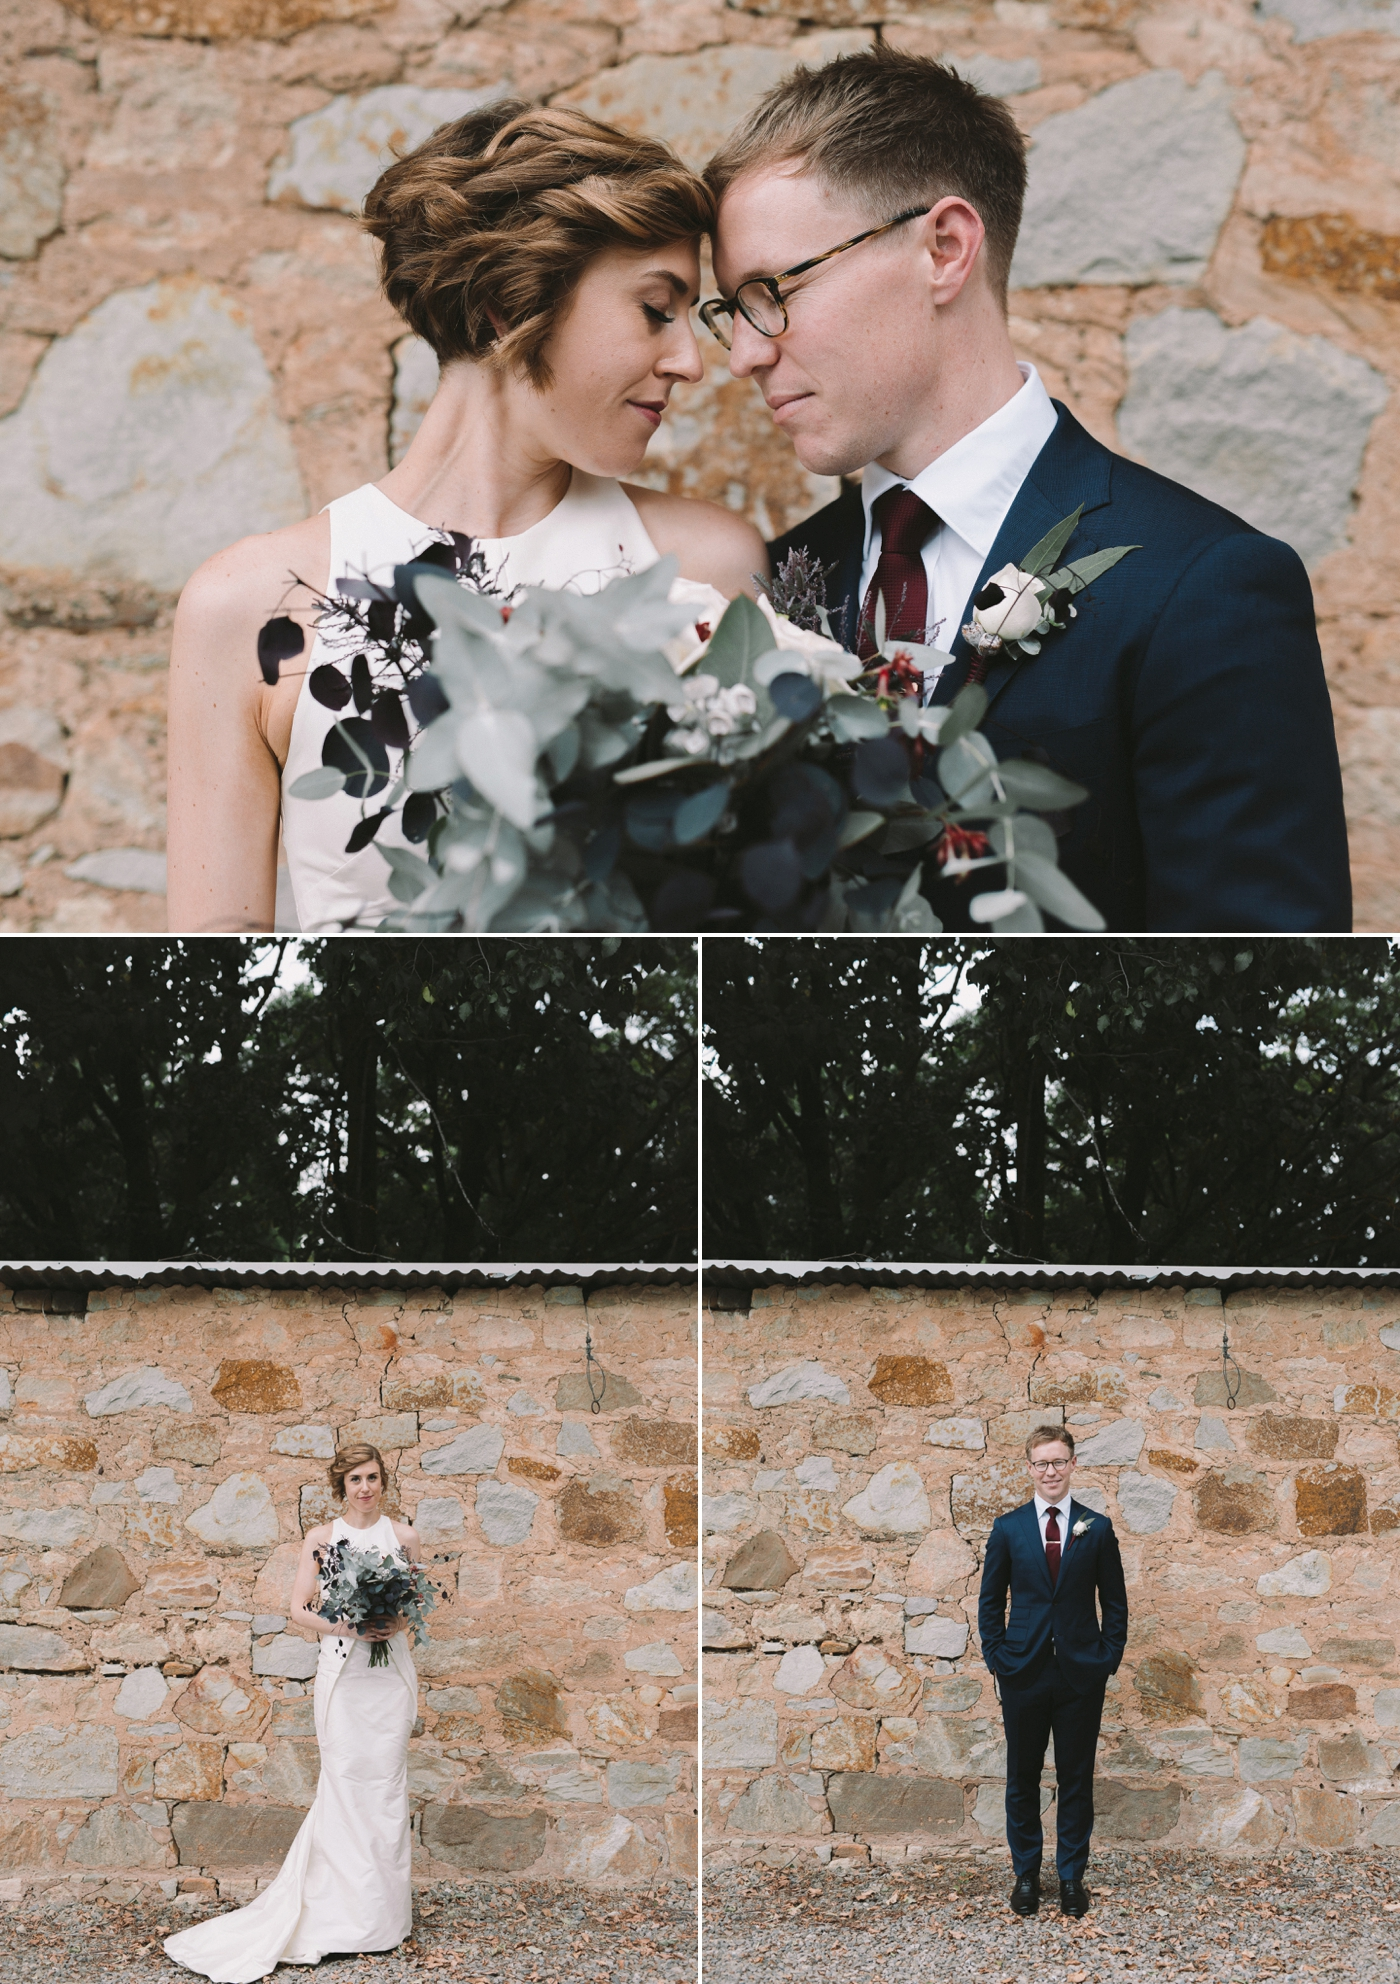 Liam & Bec - White House Adelaide Hills Wedding - Natural Wedding Photography in Adelaide - www.katherineschultzphotography.com 51